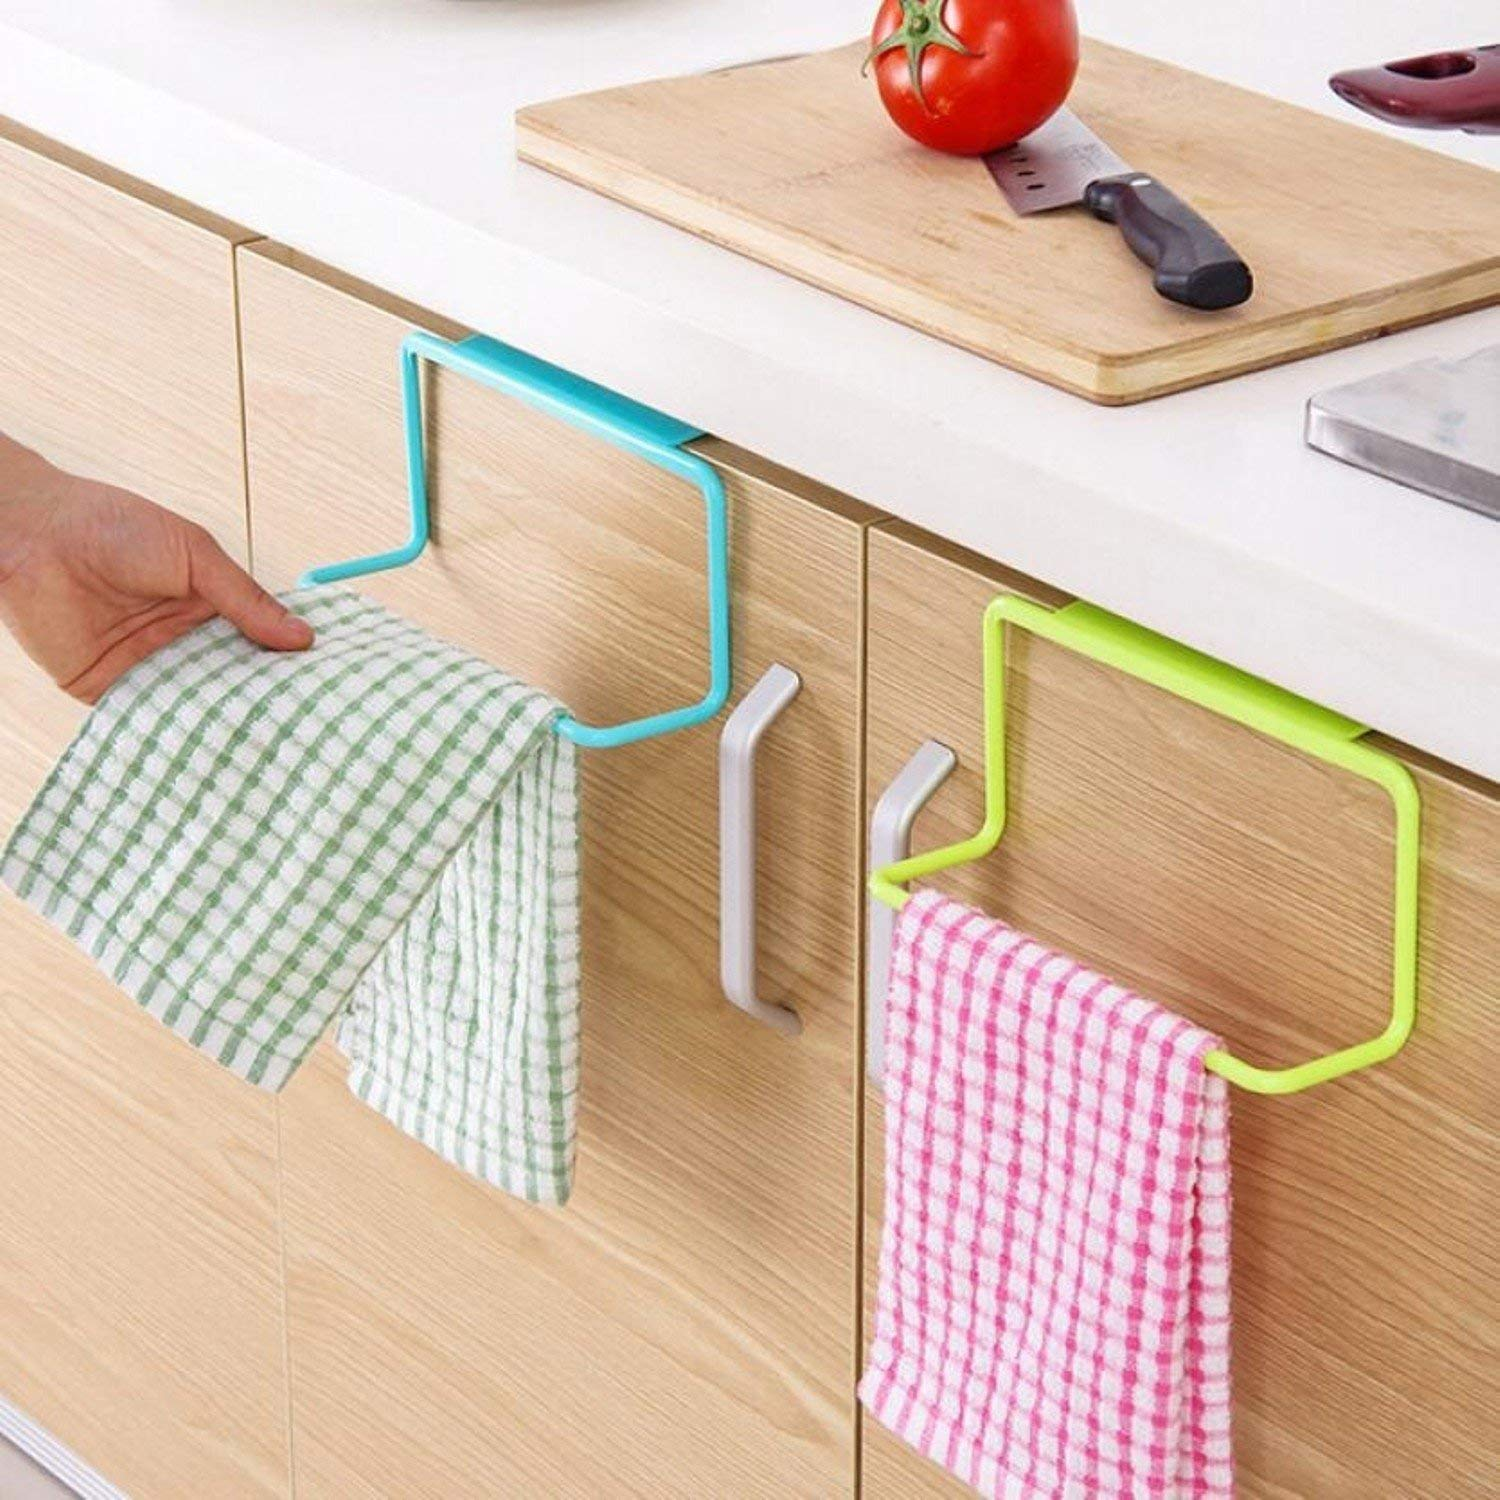 Plastic Door Back Towel Rack Bar Hanging Holder Rail Organizer Bathroom Kitchen Cabinet Cupboard Hanger Shelf